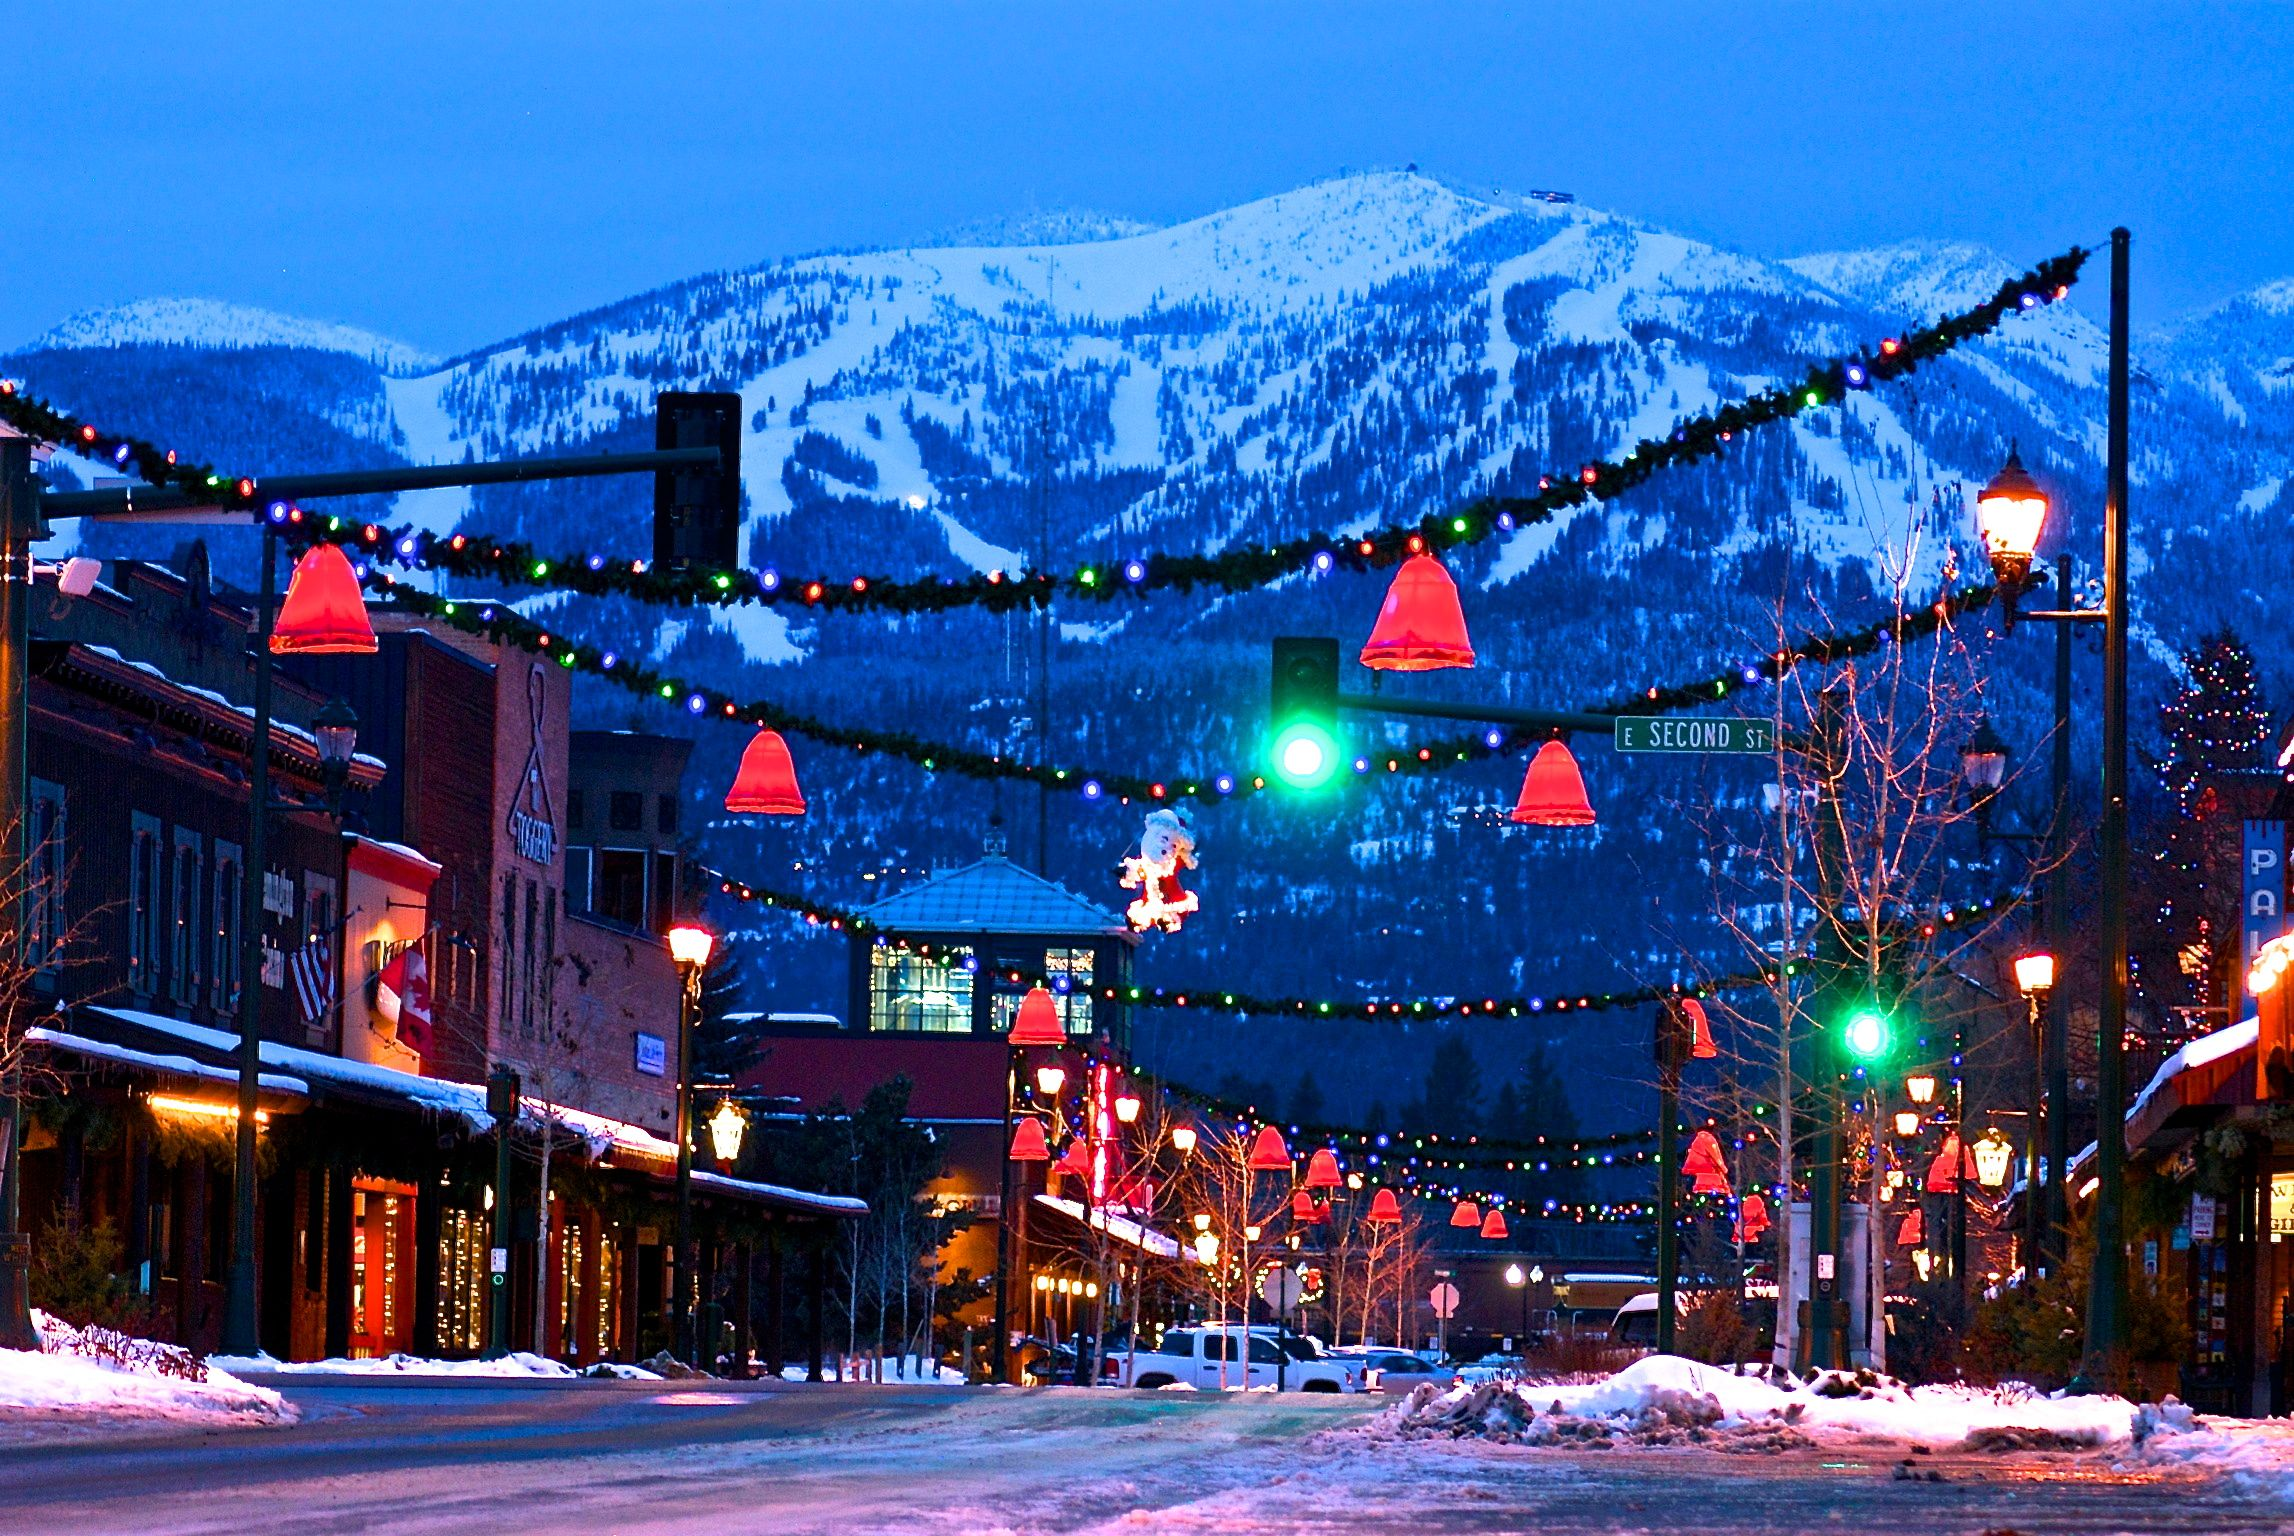 Christmas In Whitefish Montana Mary S Photographs